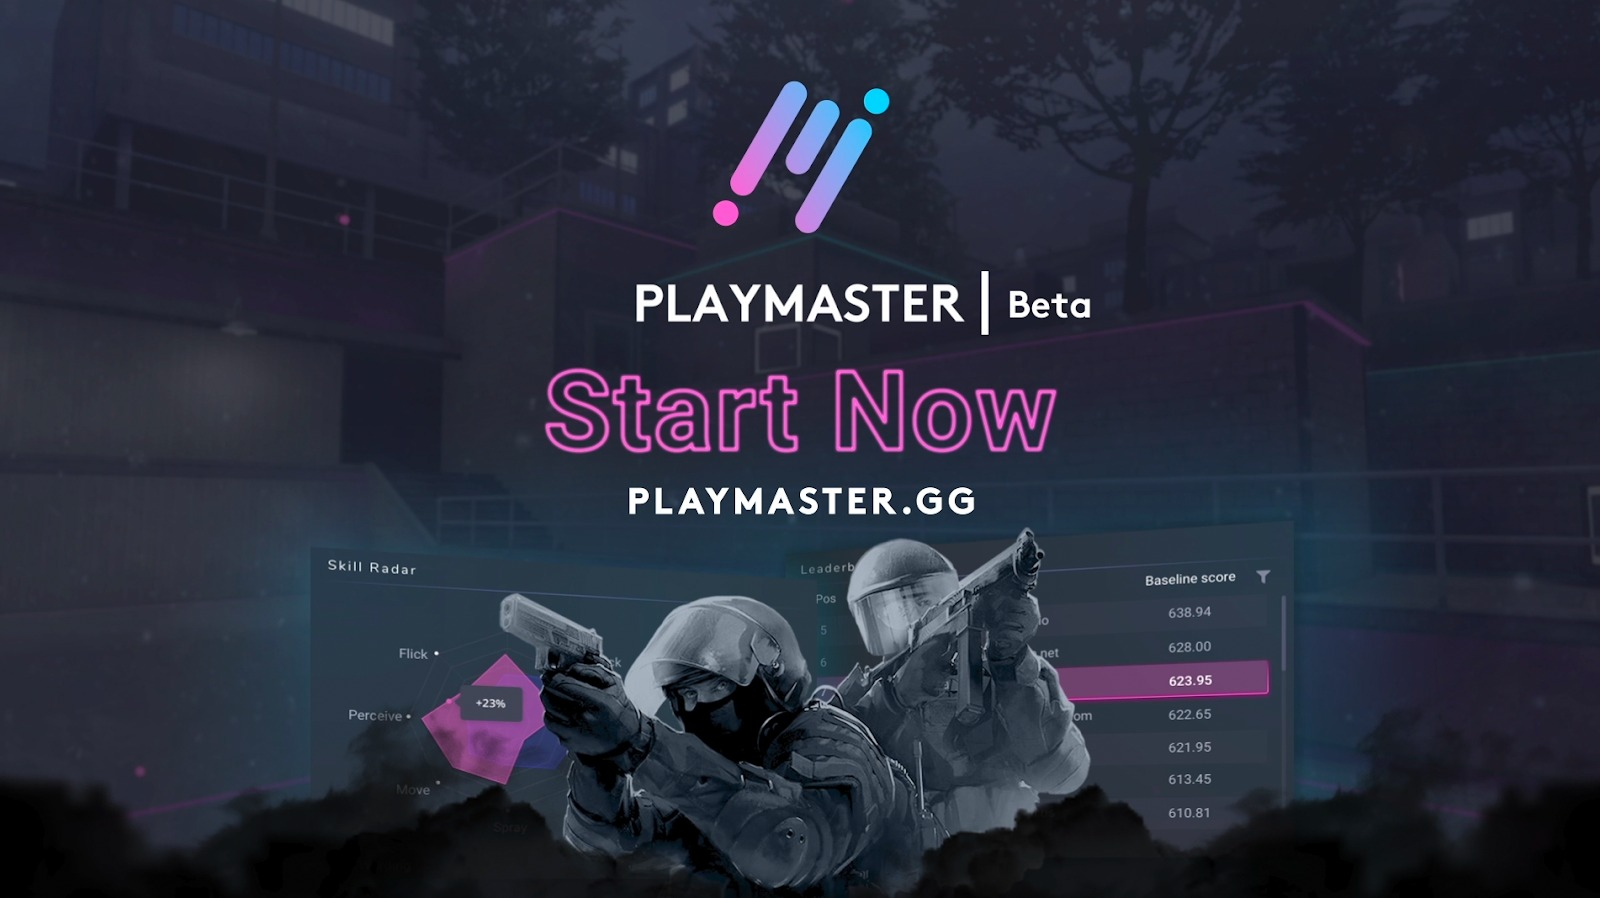 Logitech's Playmaster Software Helps You Get Better at CS:GO 5